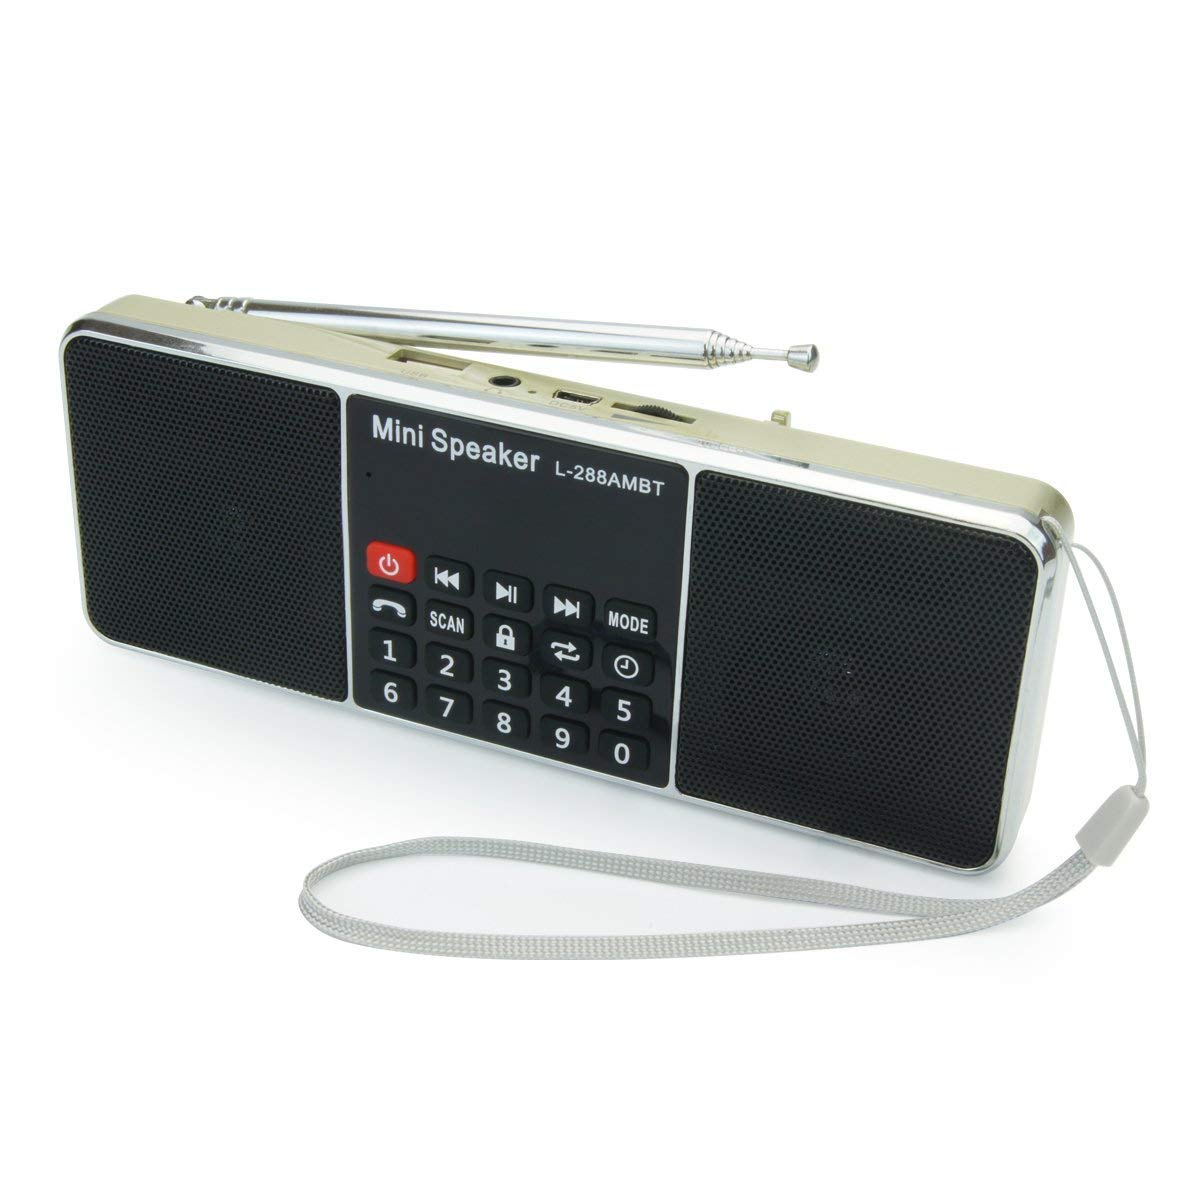 PRUNUS Portable AM FM bluetooth mp3 Long antenna radio with double magnetic speaker, stereo sound, AUX jack and sleep timer function. Stores stations automatically. Supports the following: Flash drive / Micro SD card / TF card (8GB, 16GB, 32GB, 64GB) to al